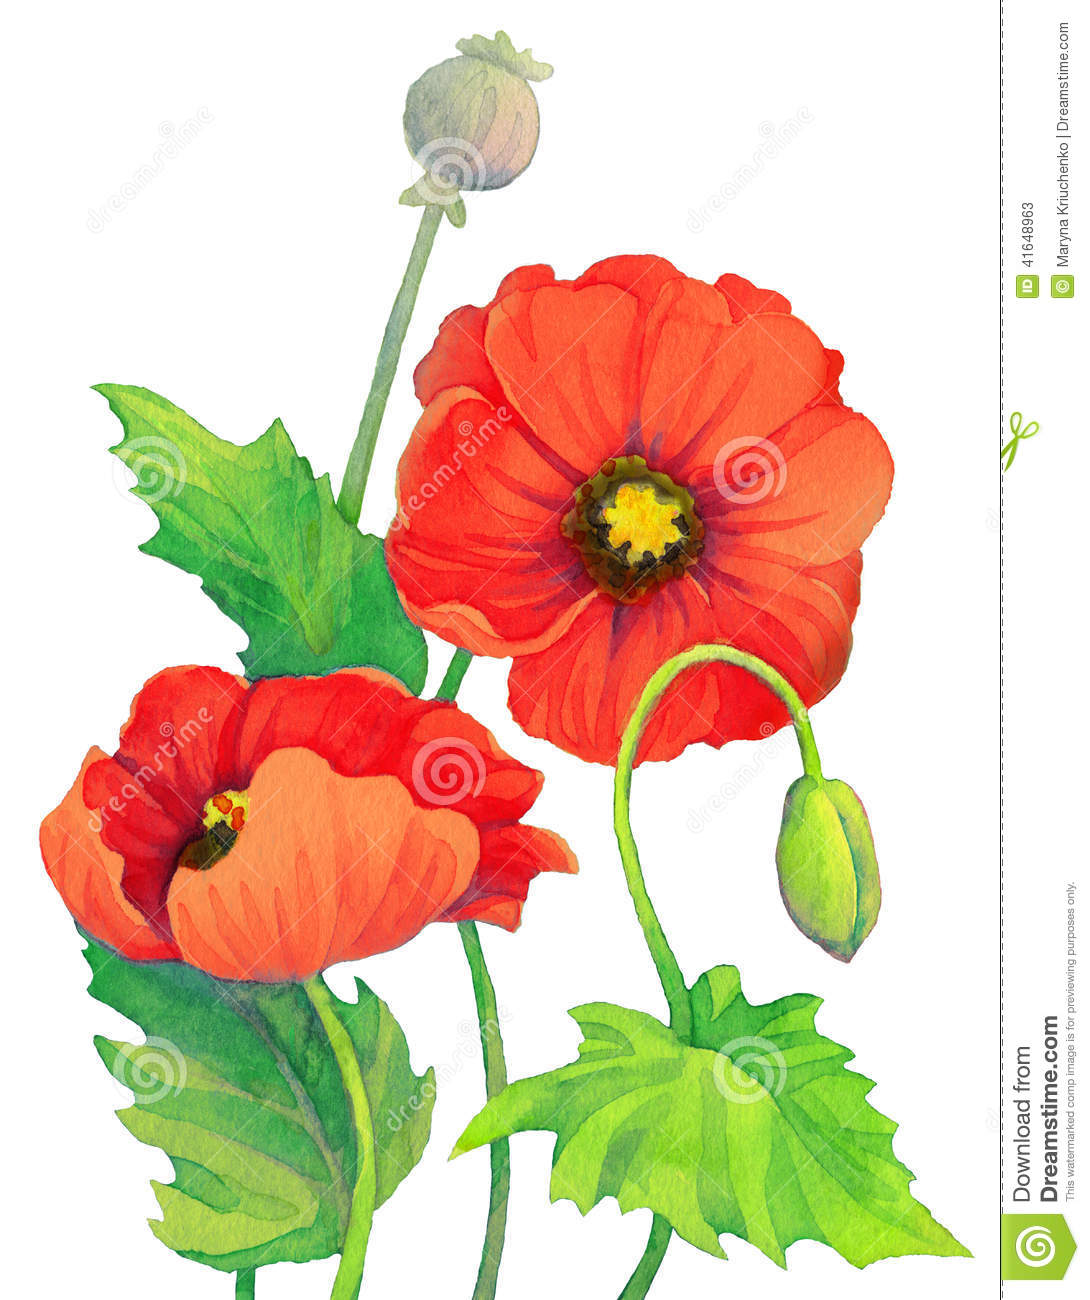 Watercolor Red Poppies Flowers Bud And Capsule Poppy Head Stock